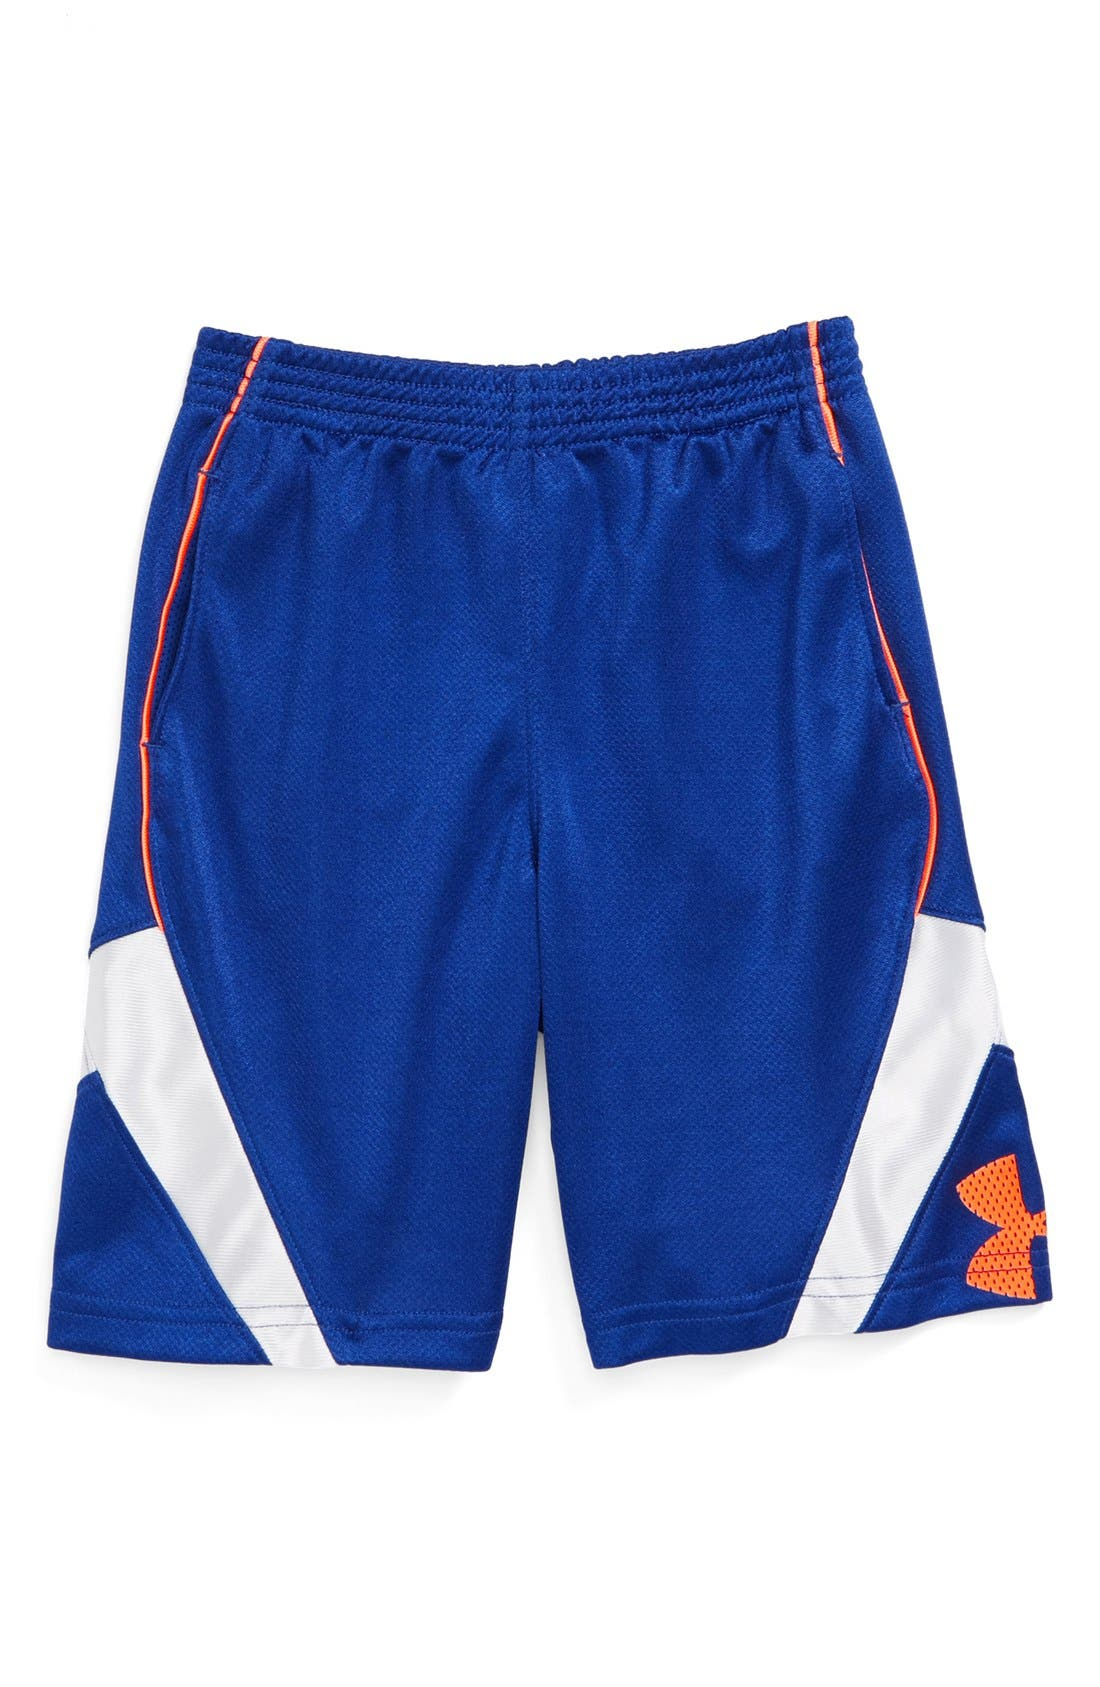 Alternate Image 1 Selected - Under Armour 'Jhawk' Shorts (Toddler Boys)